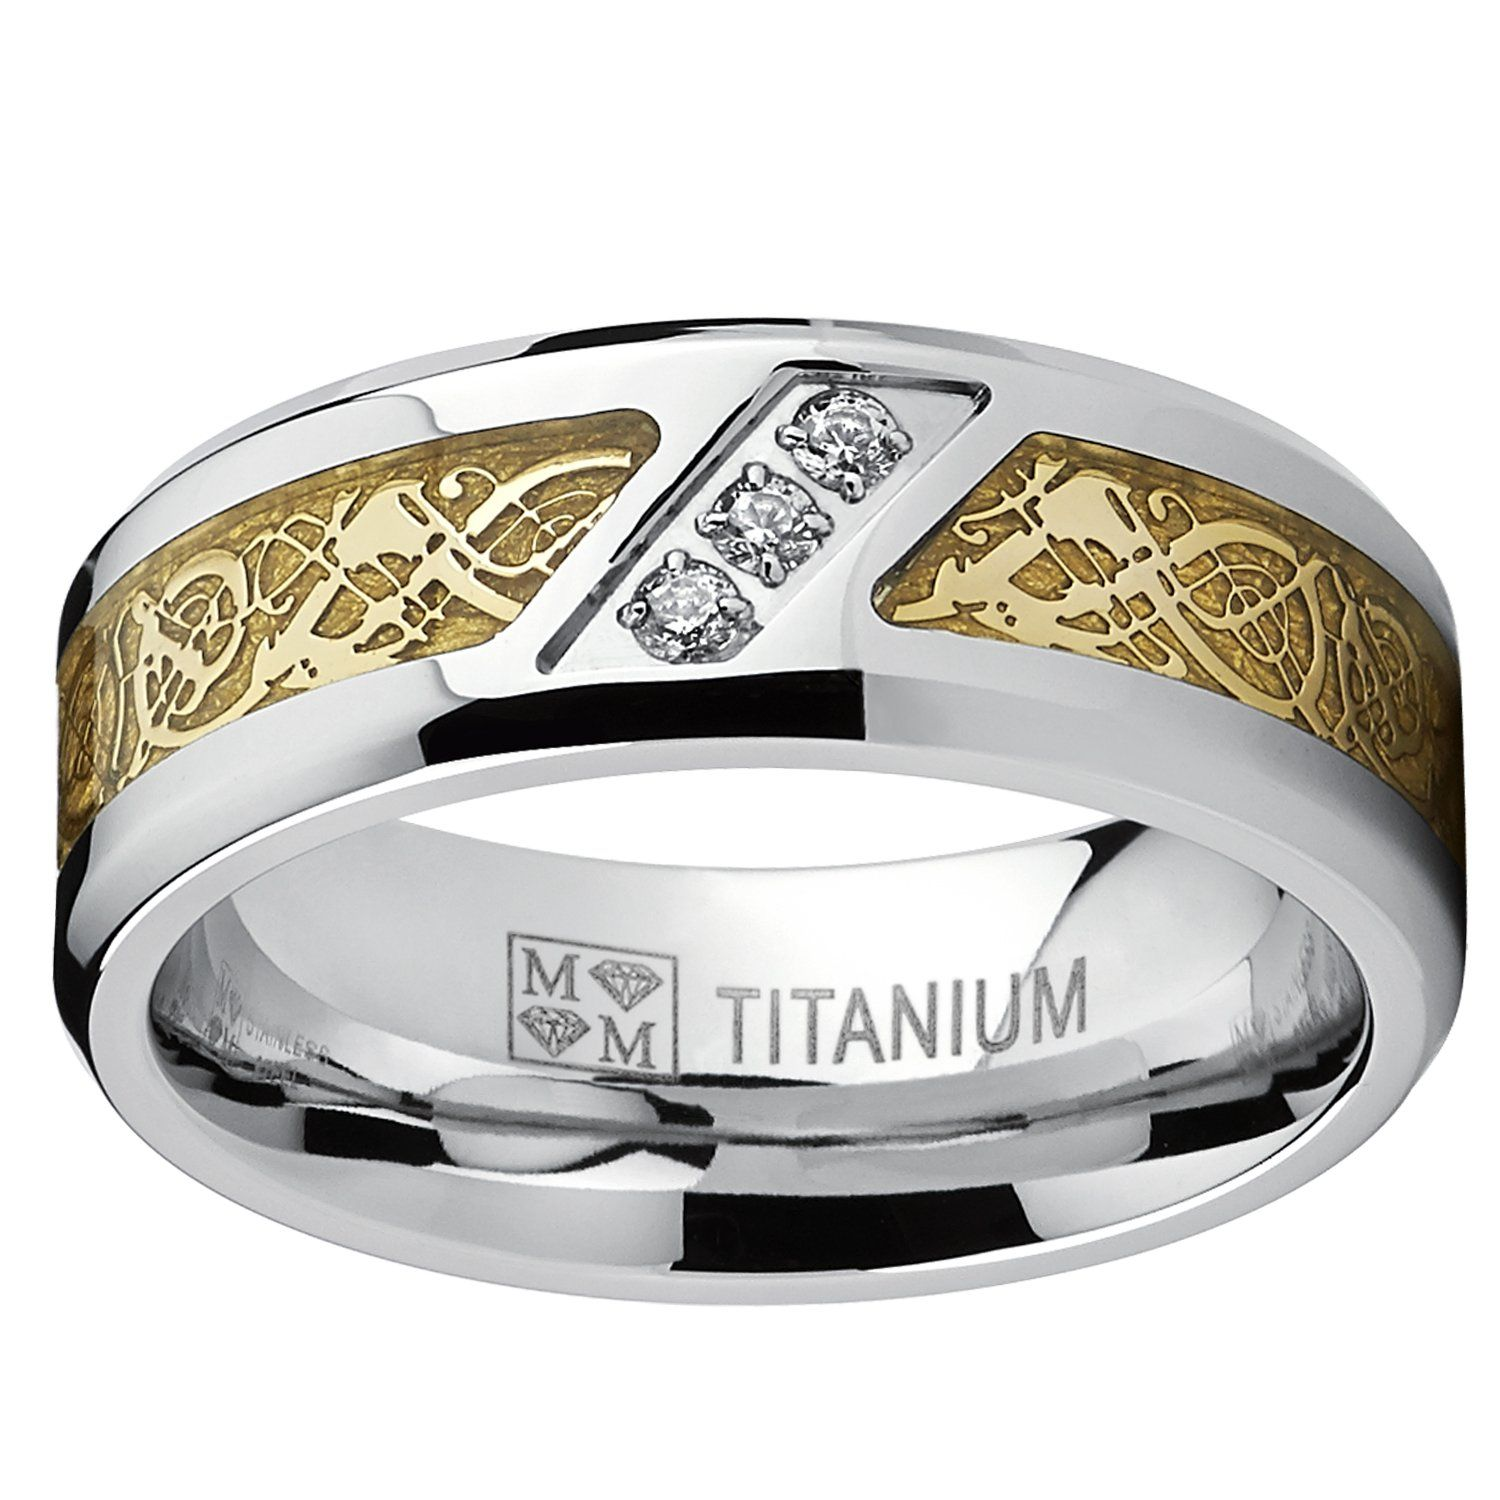 Men s Titanium Wedding Ring Engagement Band with Dragon Design and